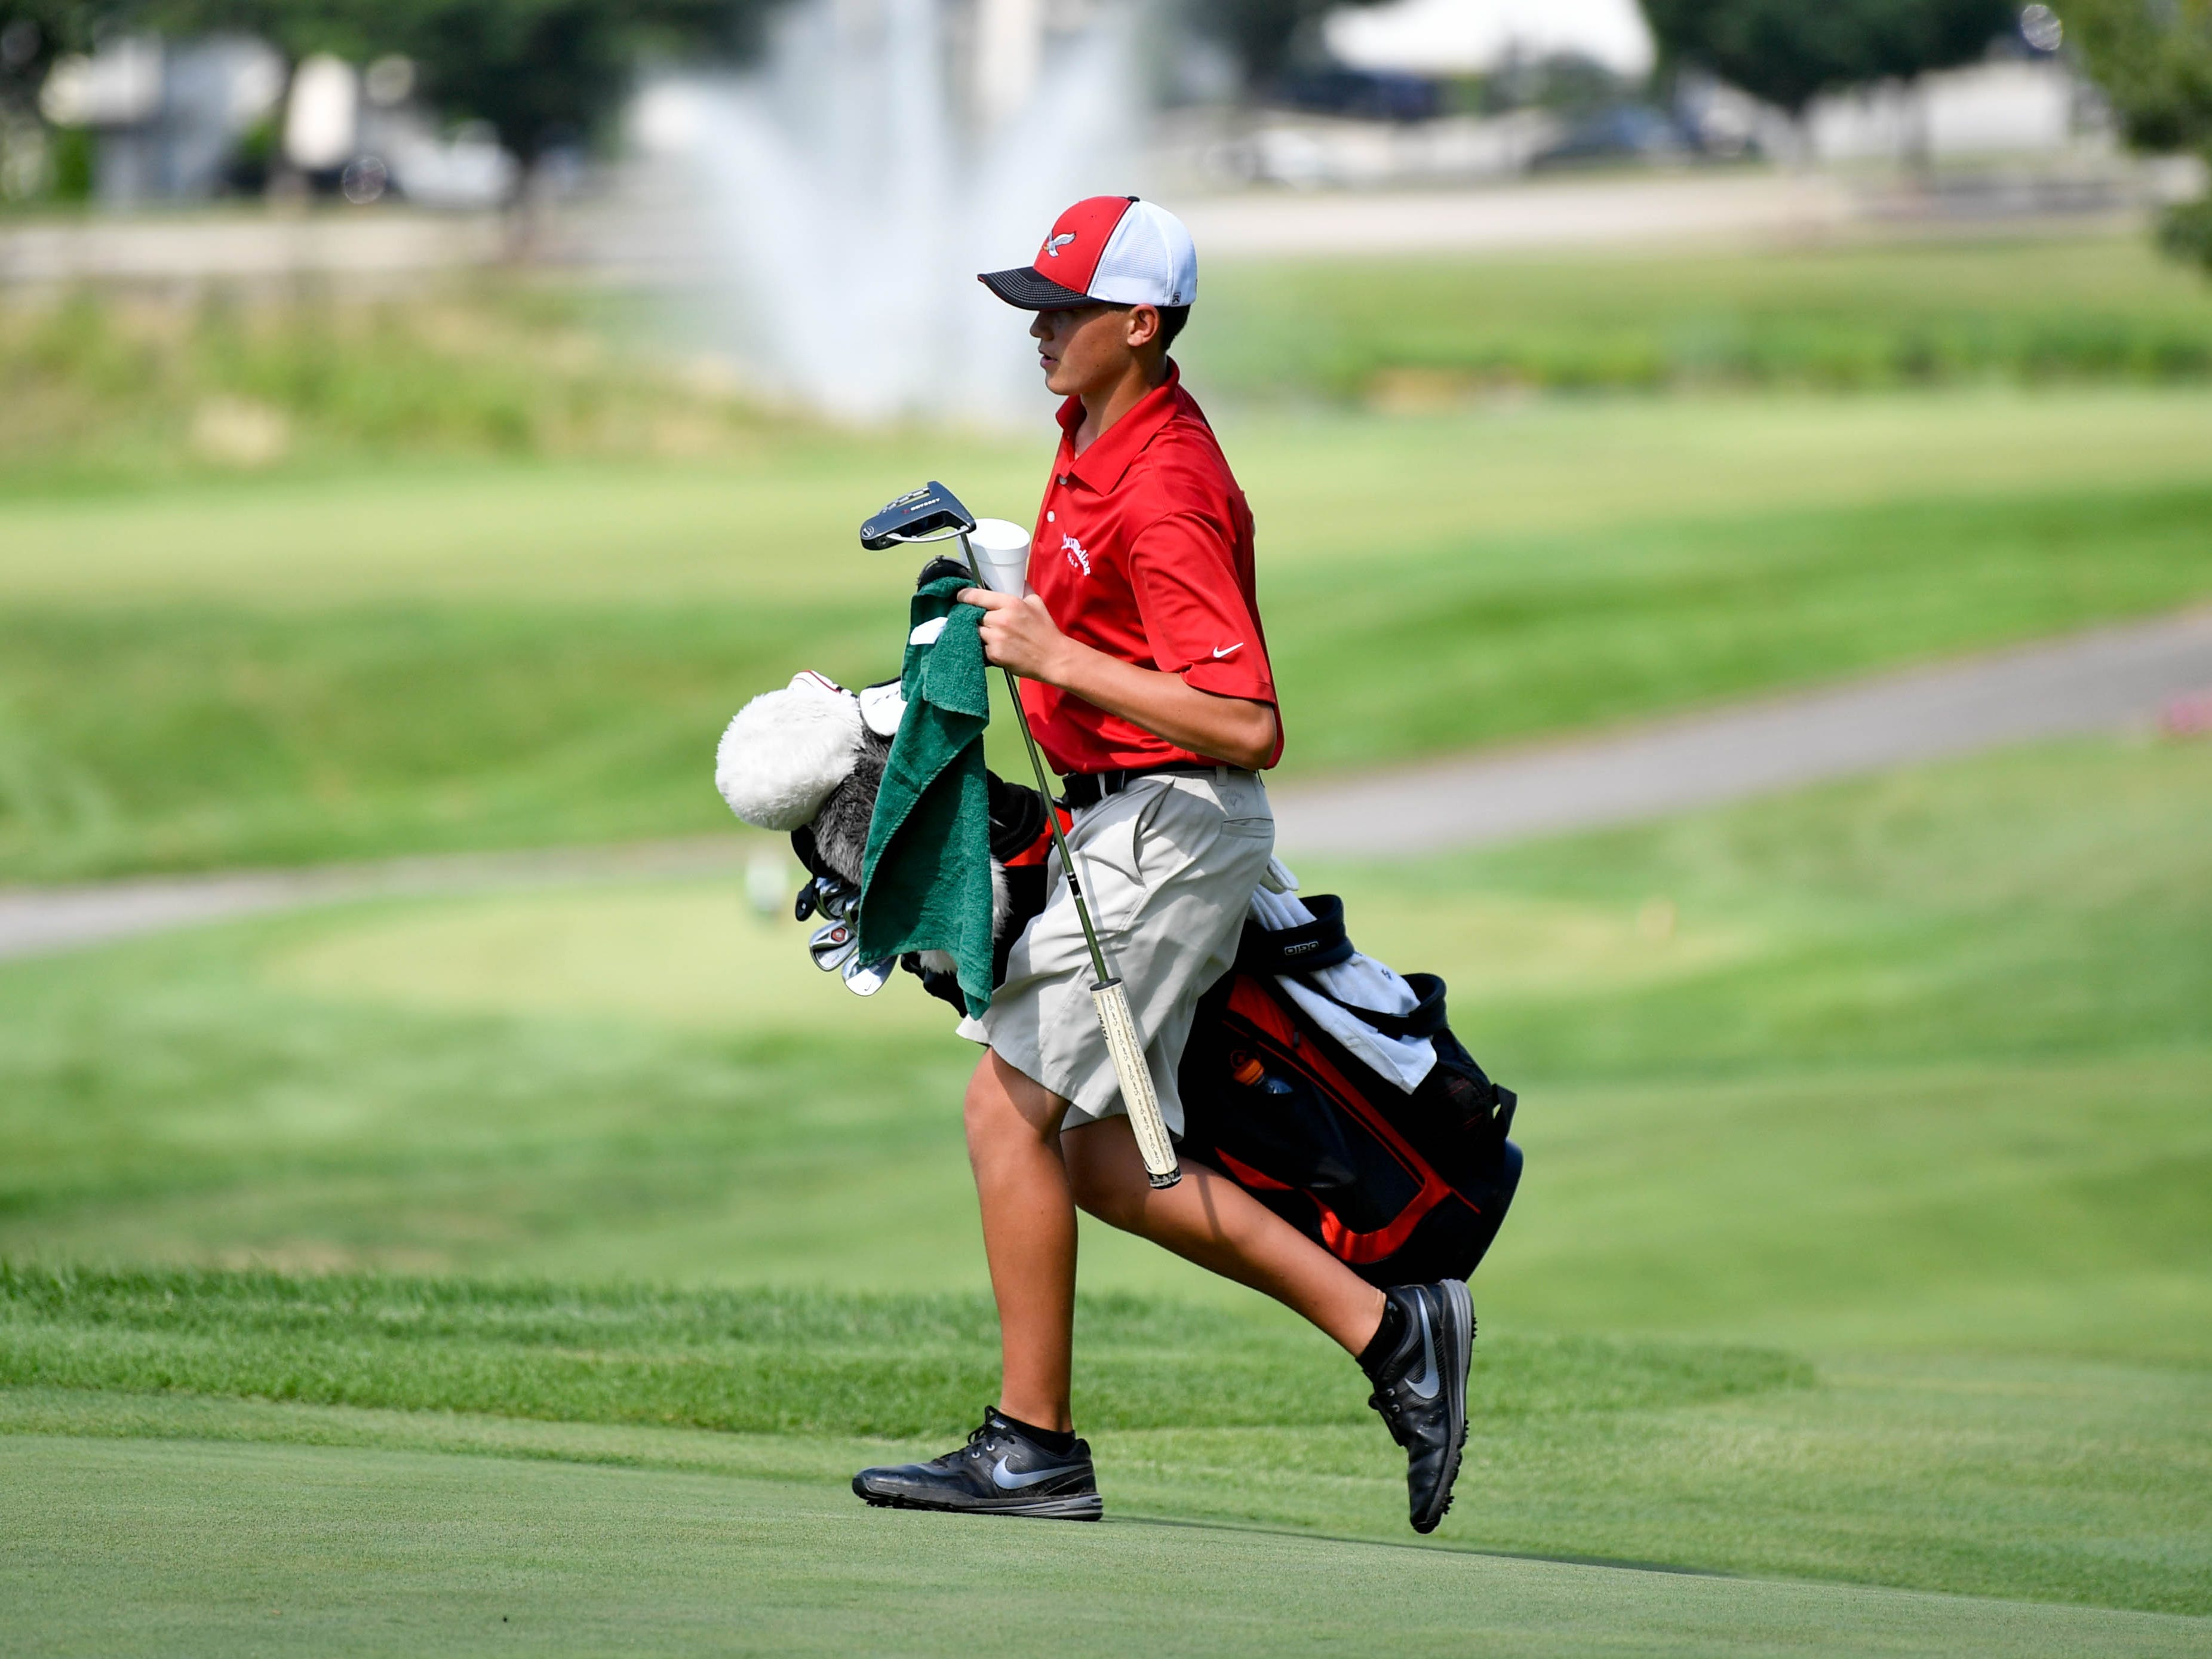 Bermudian Springs' Tucker Byers steps onto the green at Regents Glen Country Club on August 28.